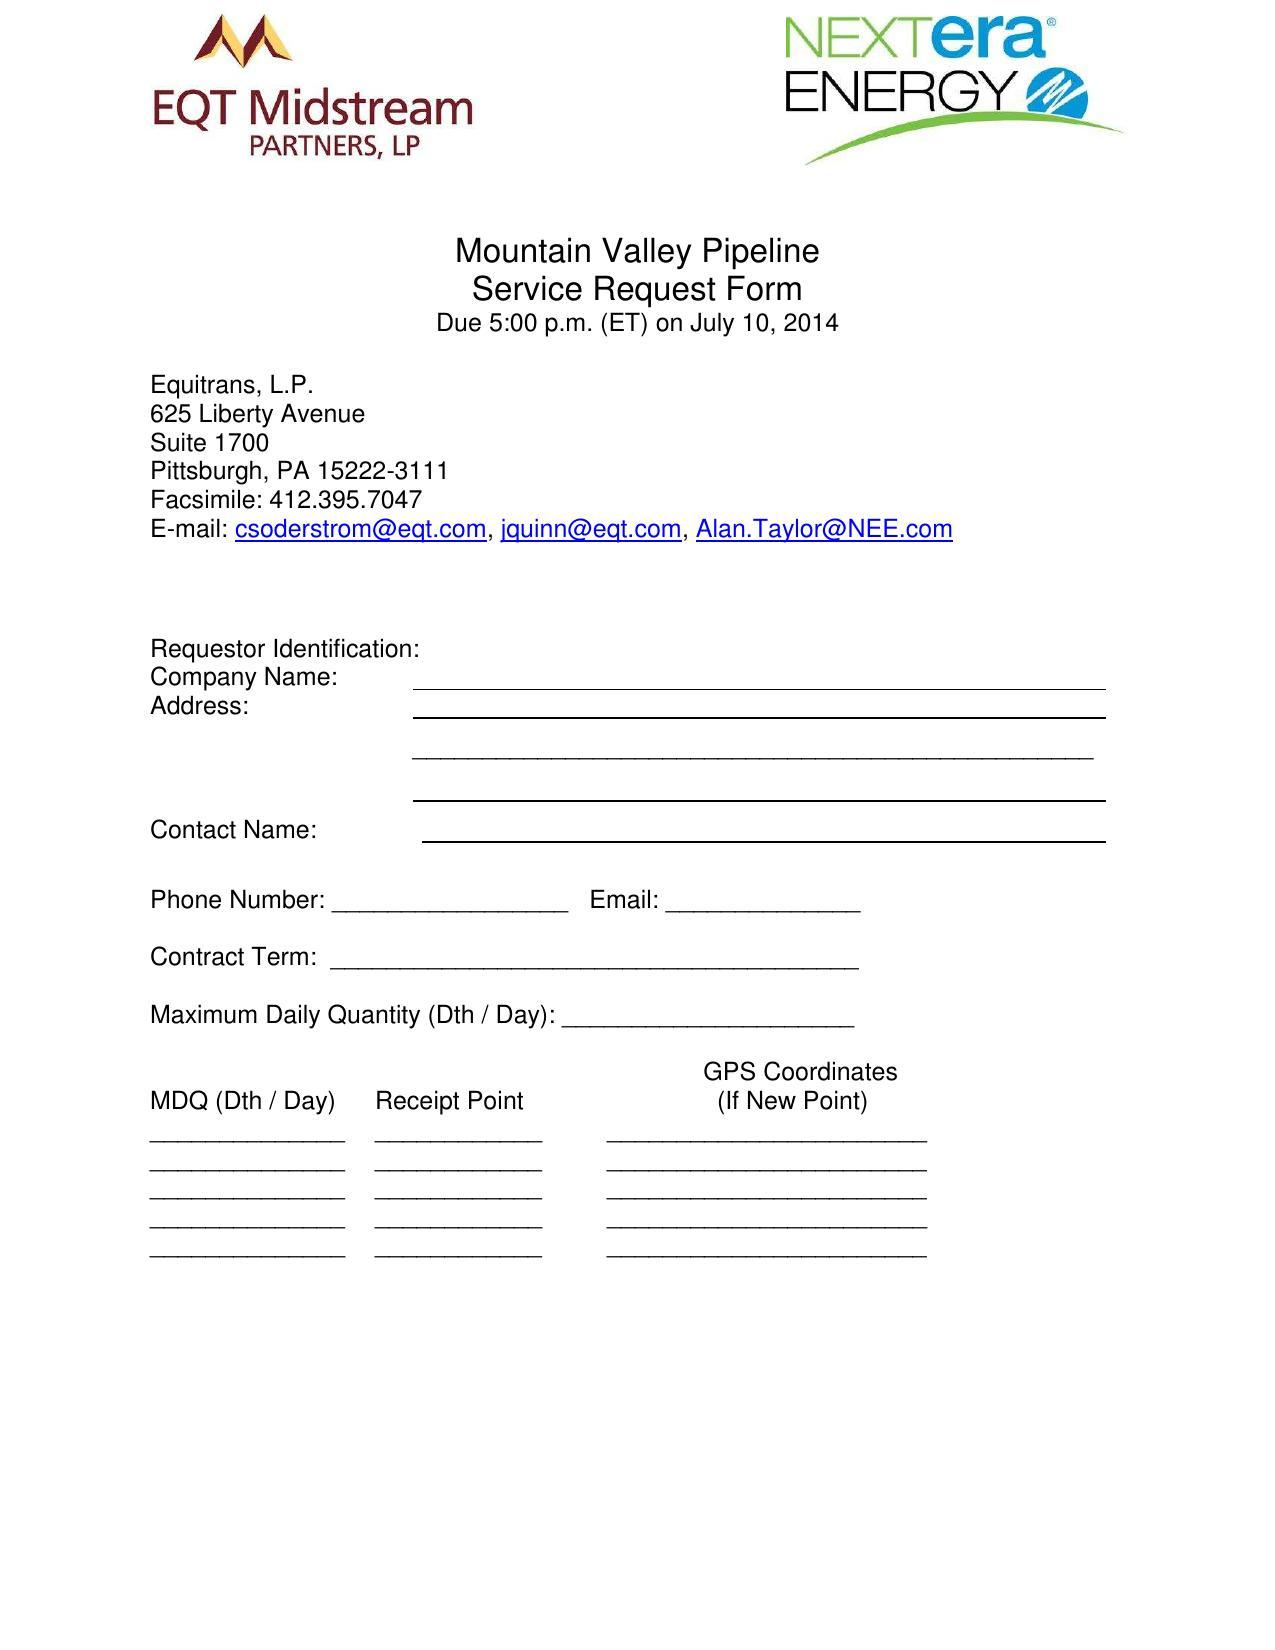 1275x1650 MVP Service Request Form (1 of 2), in Mountain Valley Pipeline Non-binding Open Season, by EQT Midstream Partners, LLP and NextEra Energy, for SpectraBusters.org, 12 June 2014